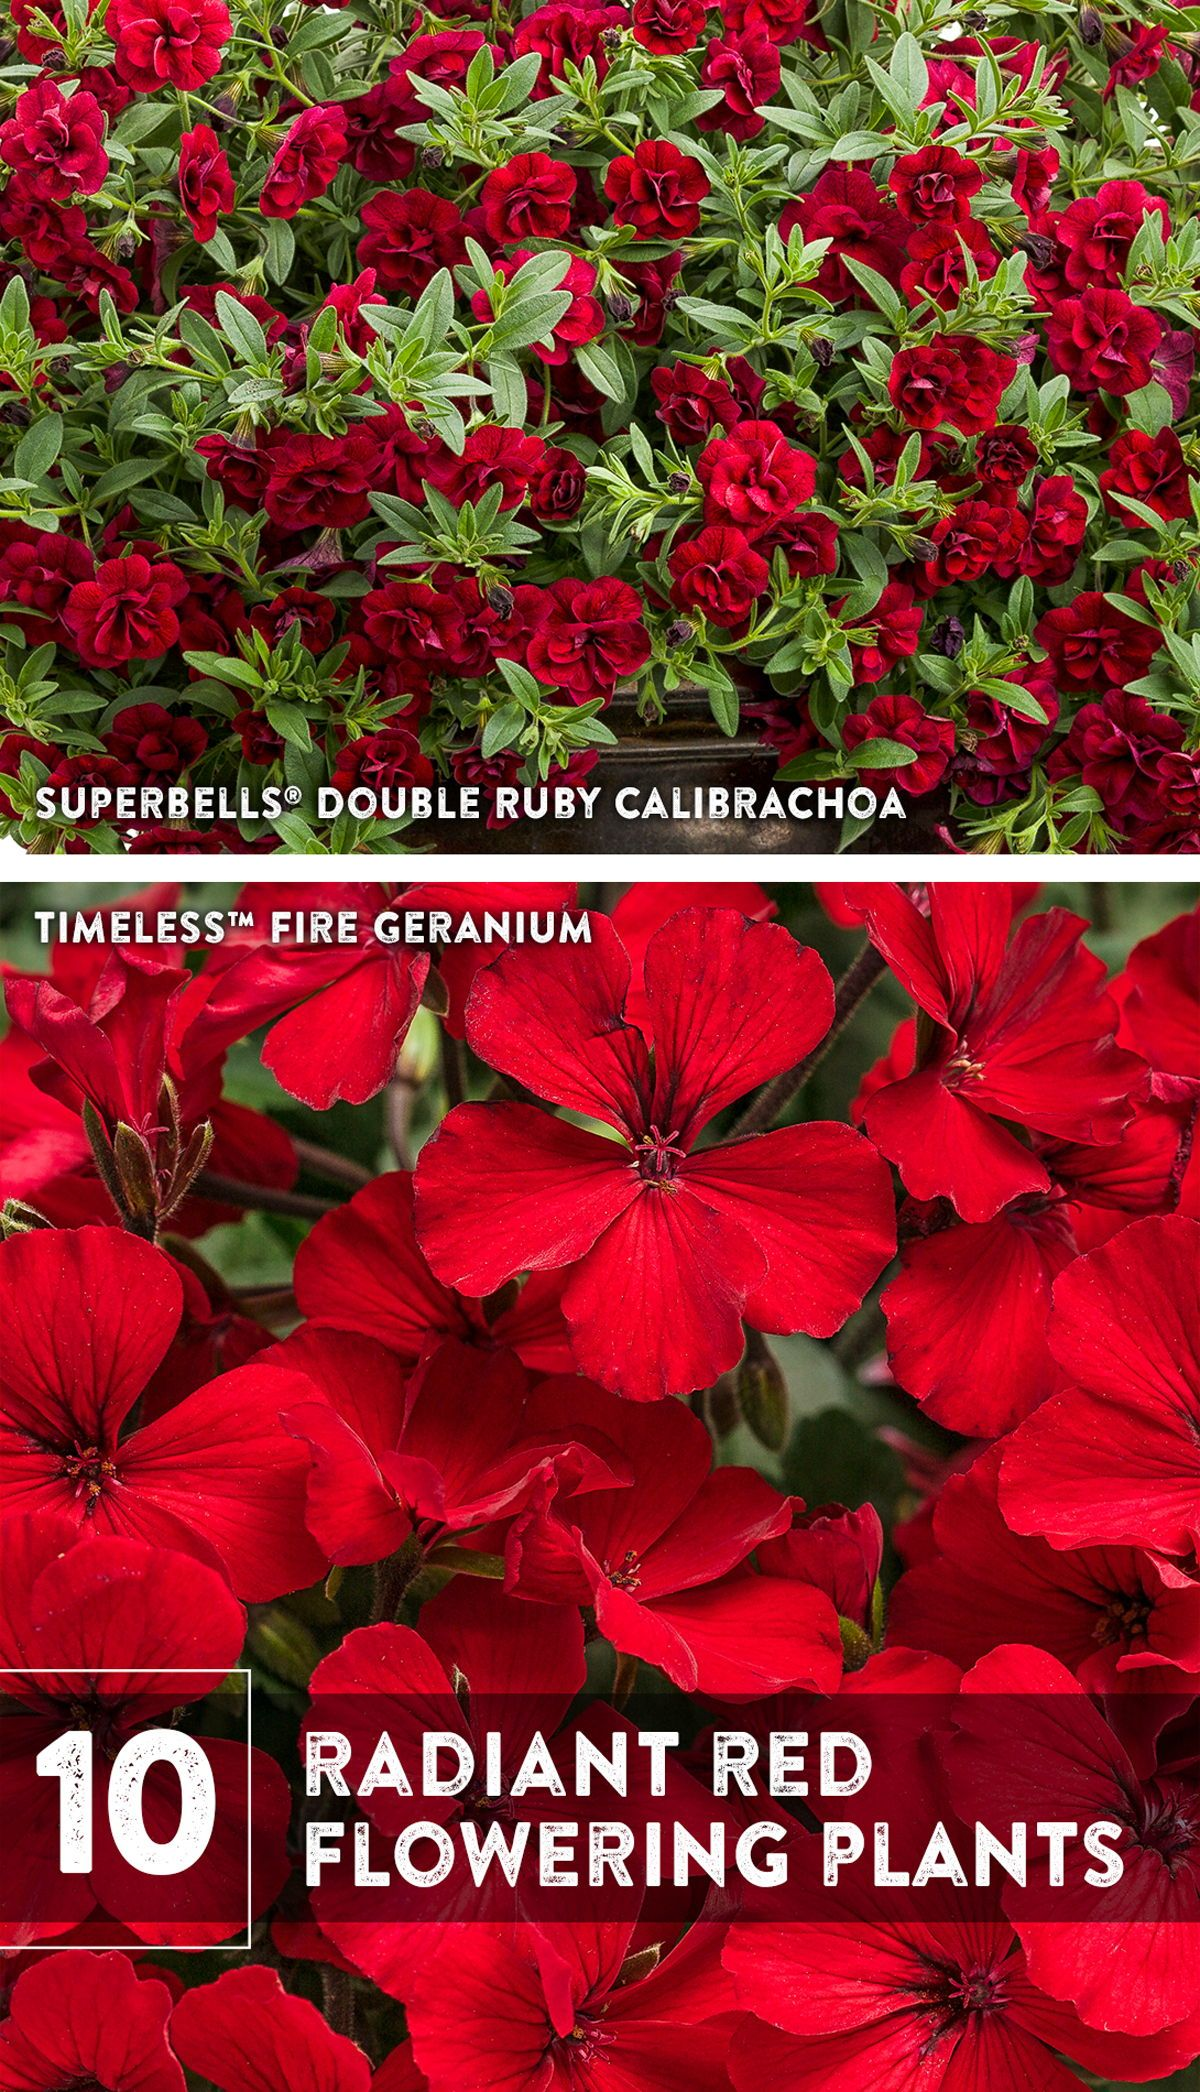 10 Radiant Red Plants In 2020 Red Plants Red Perennials Red Shrubs